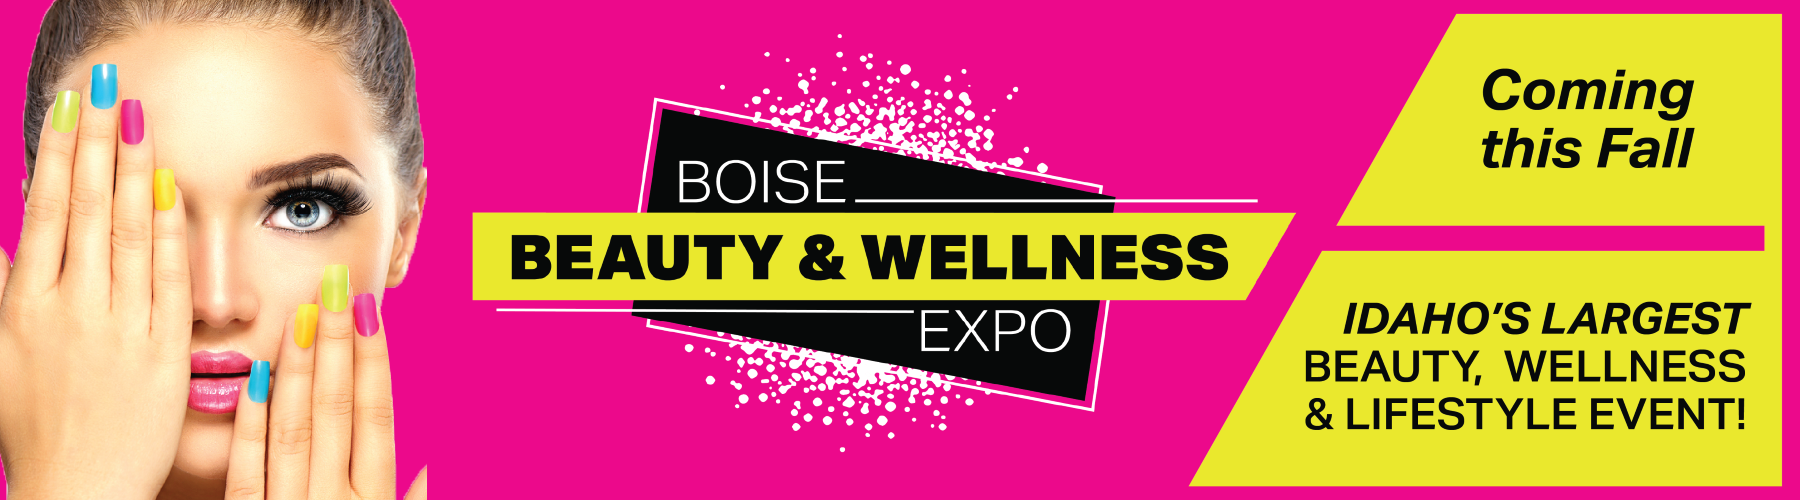 Boise Beauty Expo website banner